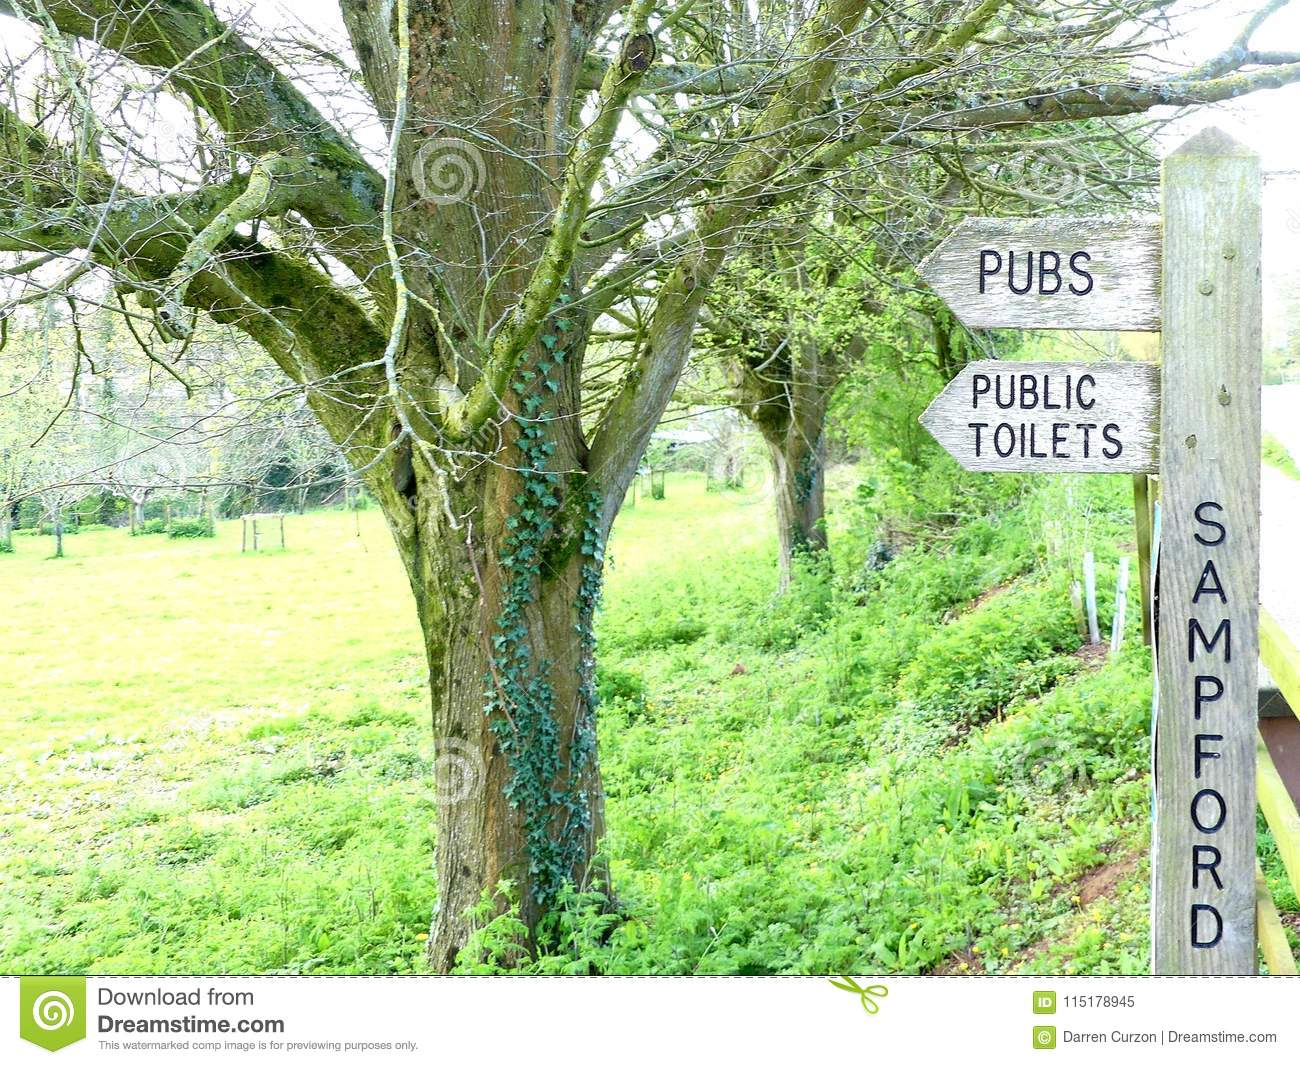 A Signpost In Sampford Peverell, Devon, Directing Towards Pubs And ...